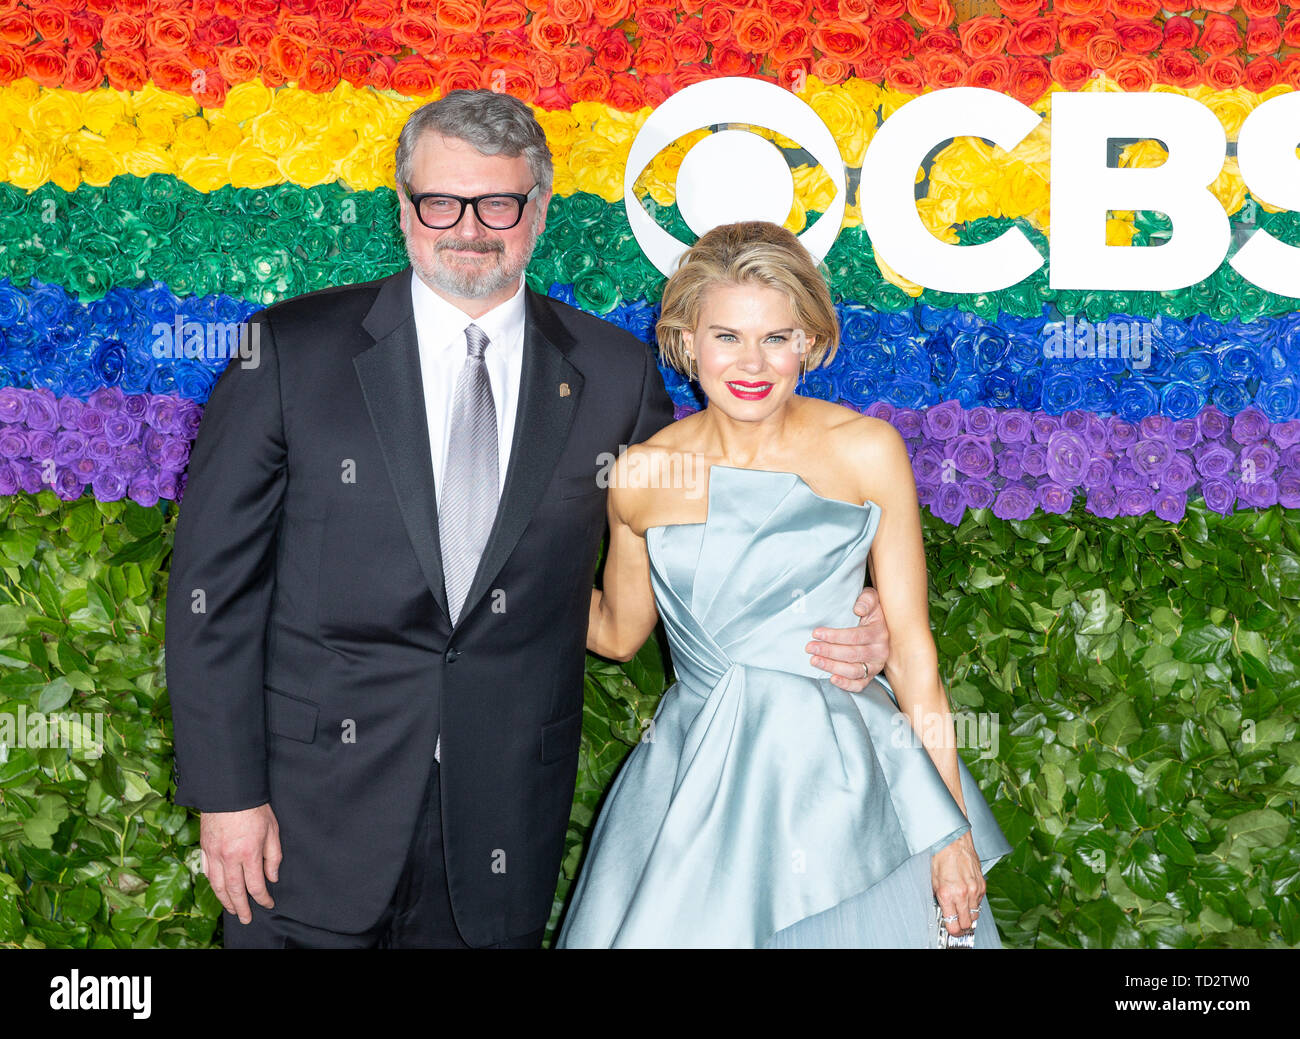 New York, United States. 09th June, 2019. John Ellison Conlee and Celia Keenan-Bolger attend the 73rd annual Tony Awards at Radio City Music Hall Credit: Lev Radin/Pacific Press/Alamy Live News - Stock Image